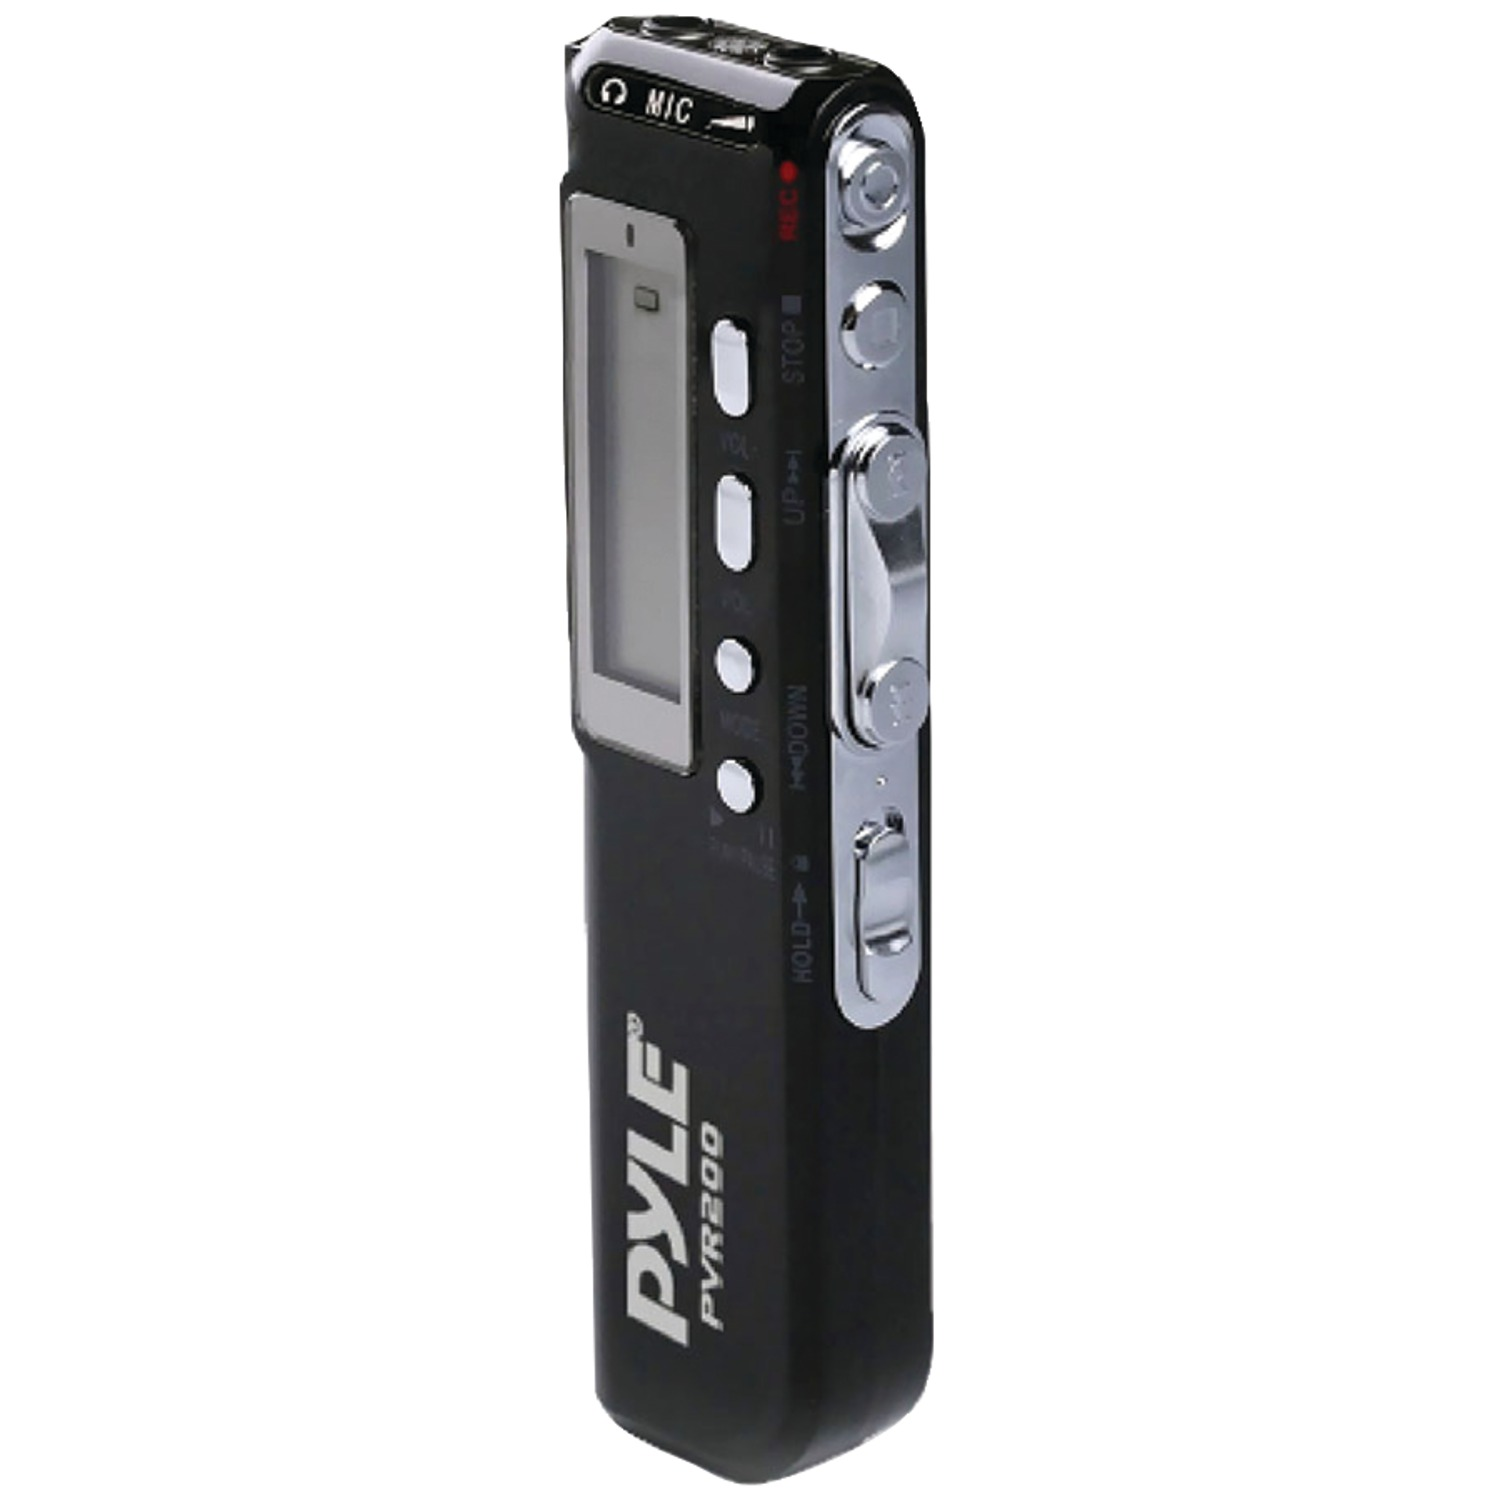 Pyle Home PVR200 Digital Voice Recorder with 4GB Built-in Memory